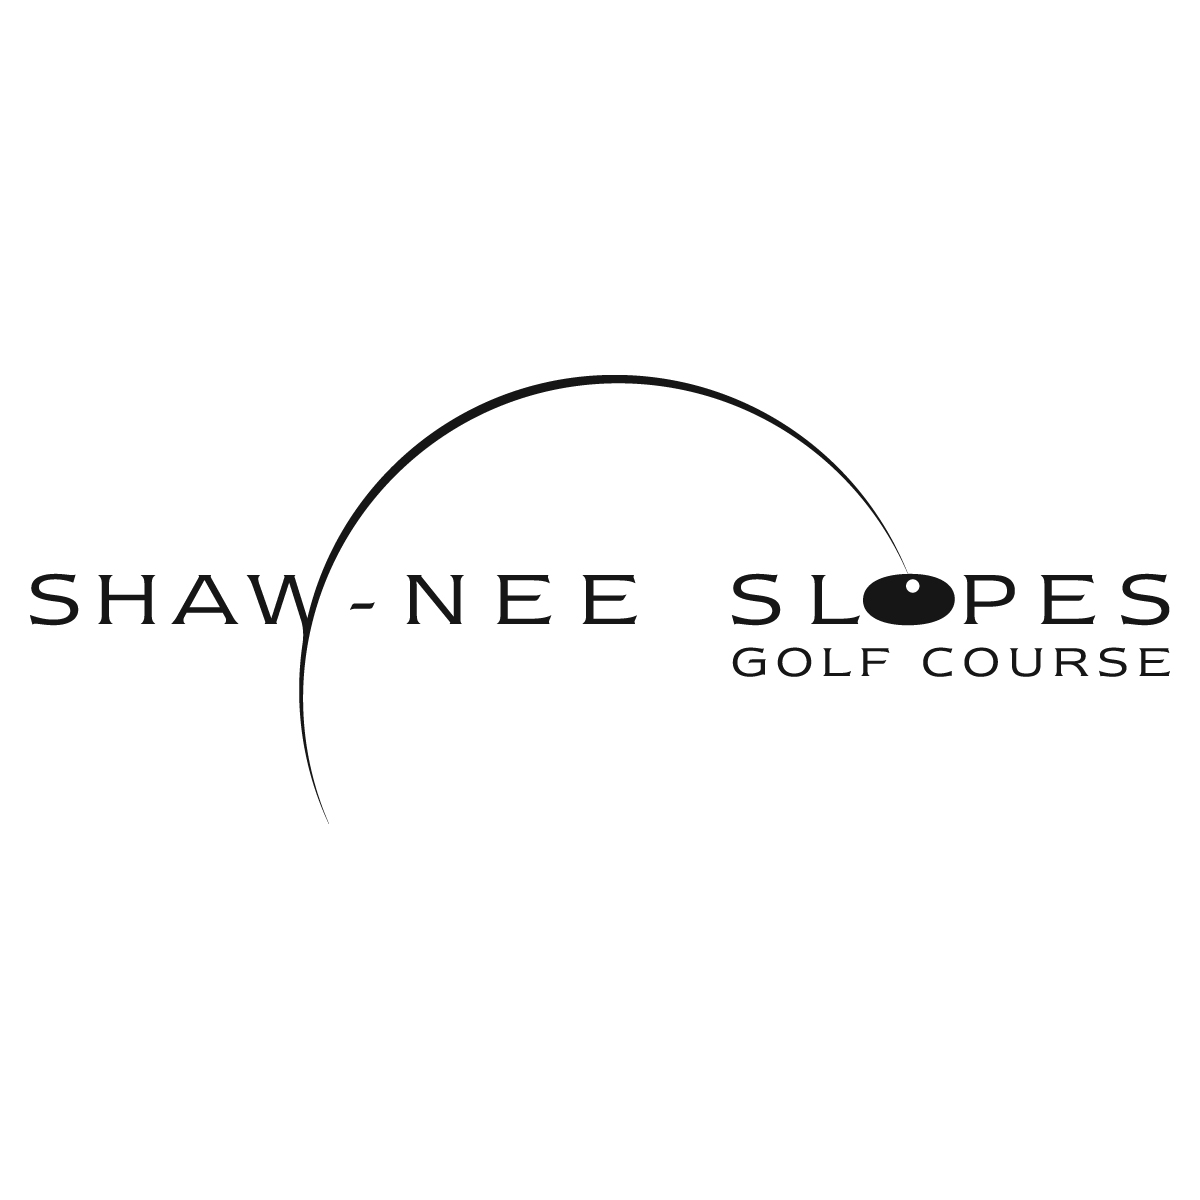 Shaw-nee Slopes Golf Course